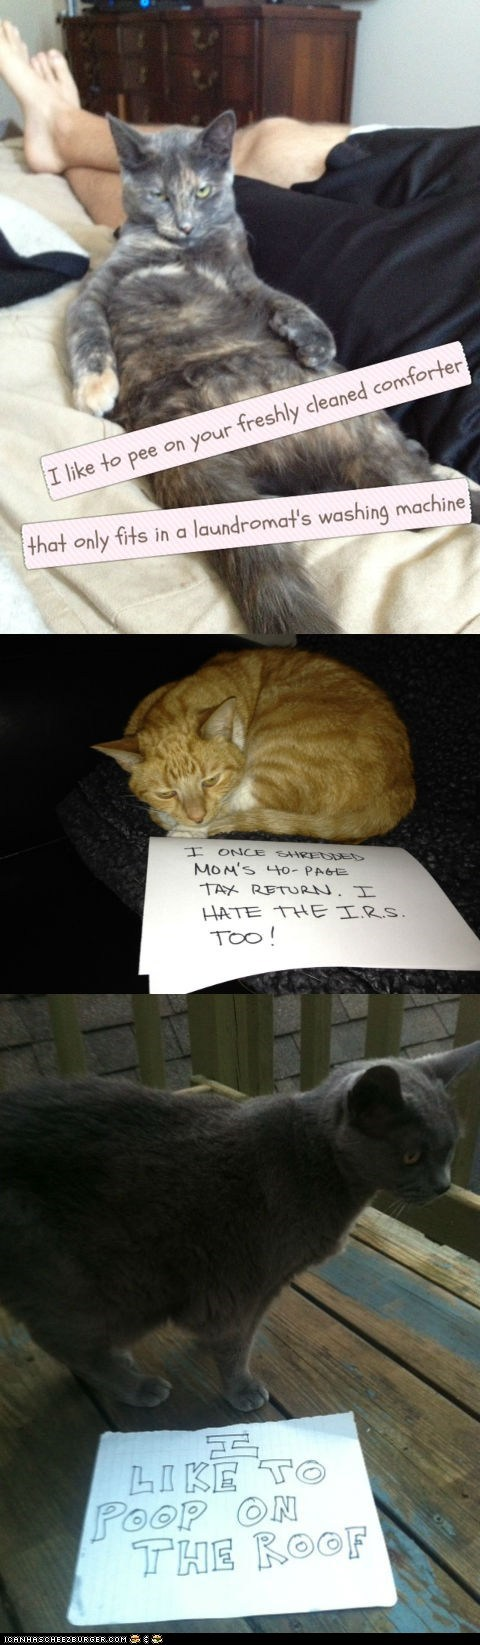 cat shaming,Cats,destruction,dog shaming,guilty,shame,shaming,tumblrs